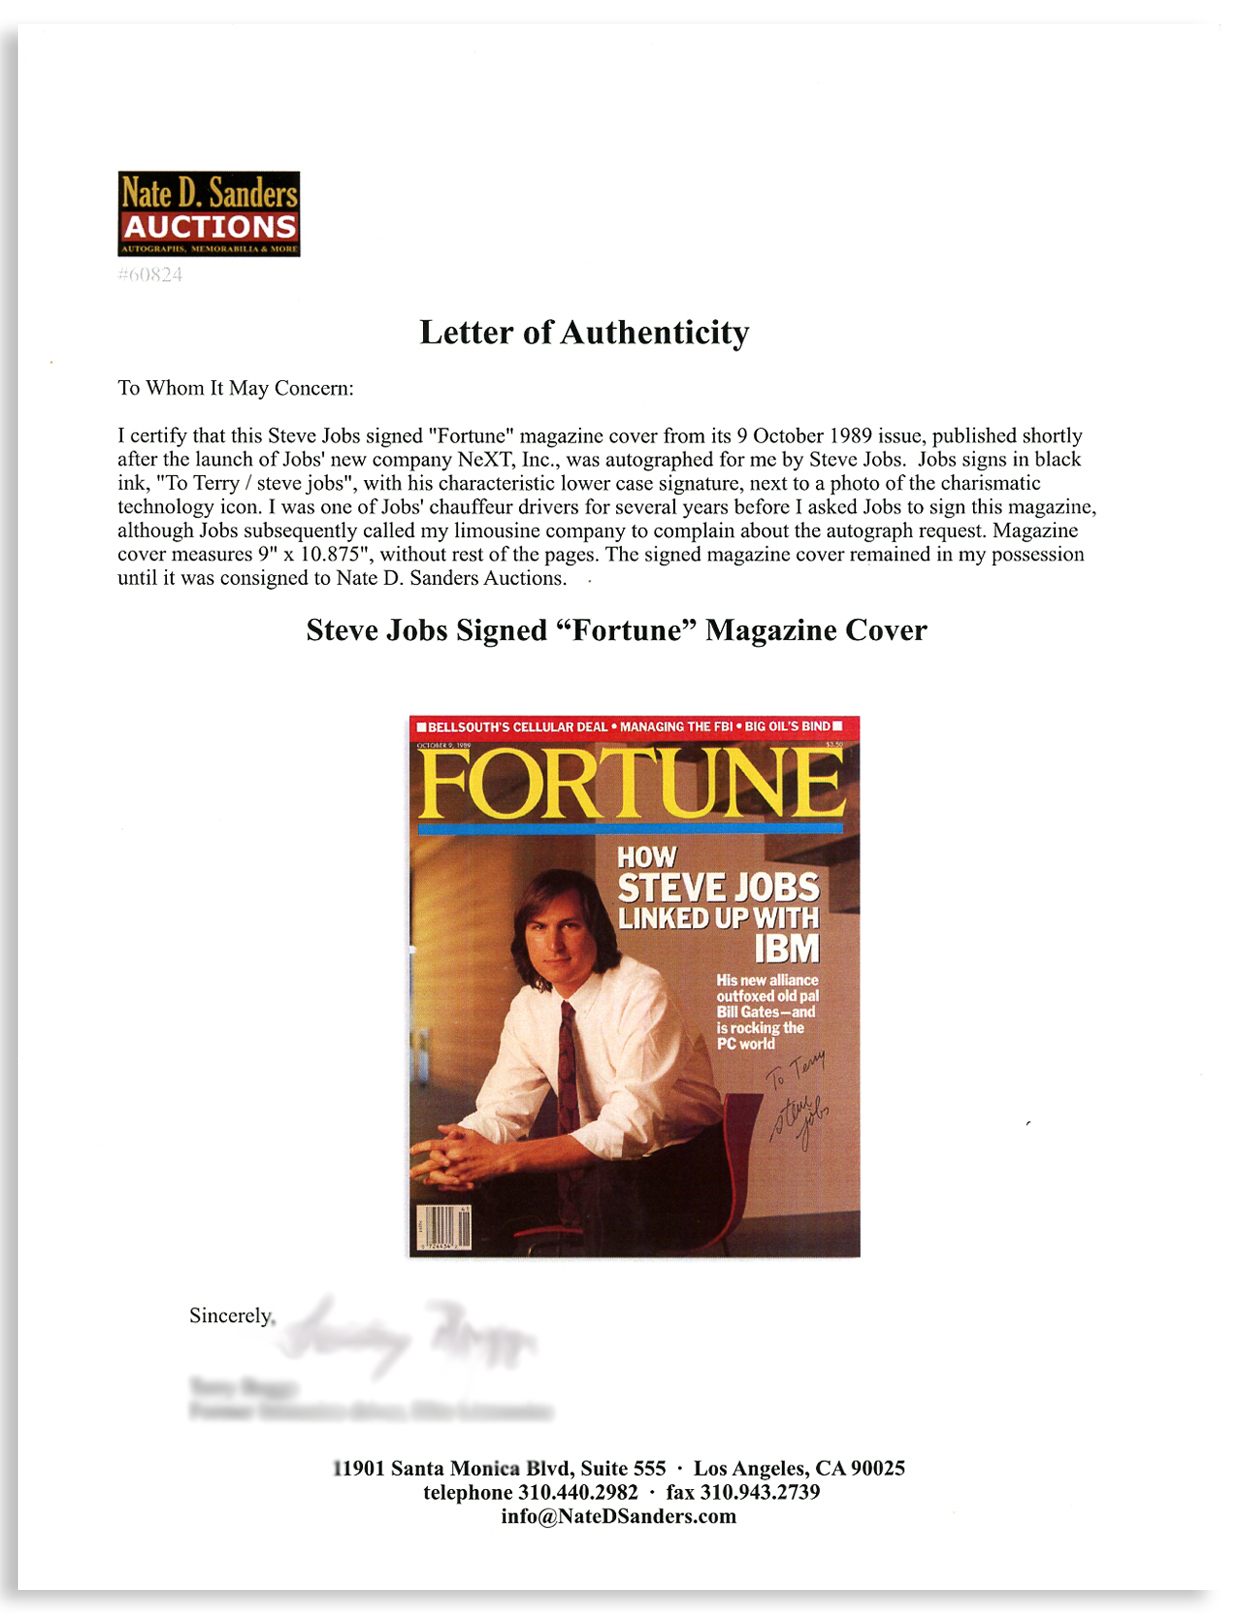 Steve Jobs Fortune signature